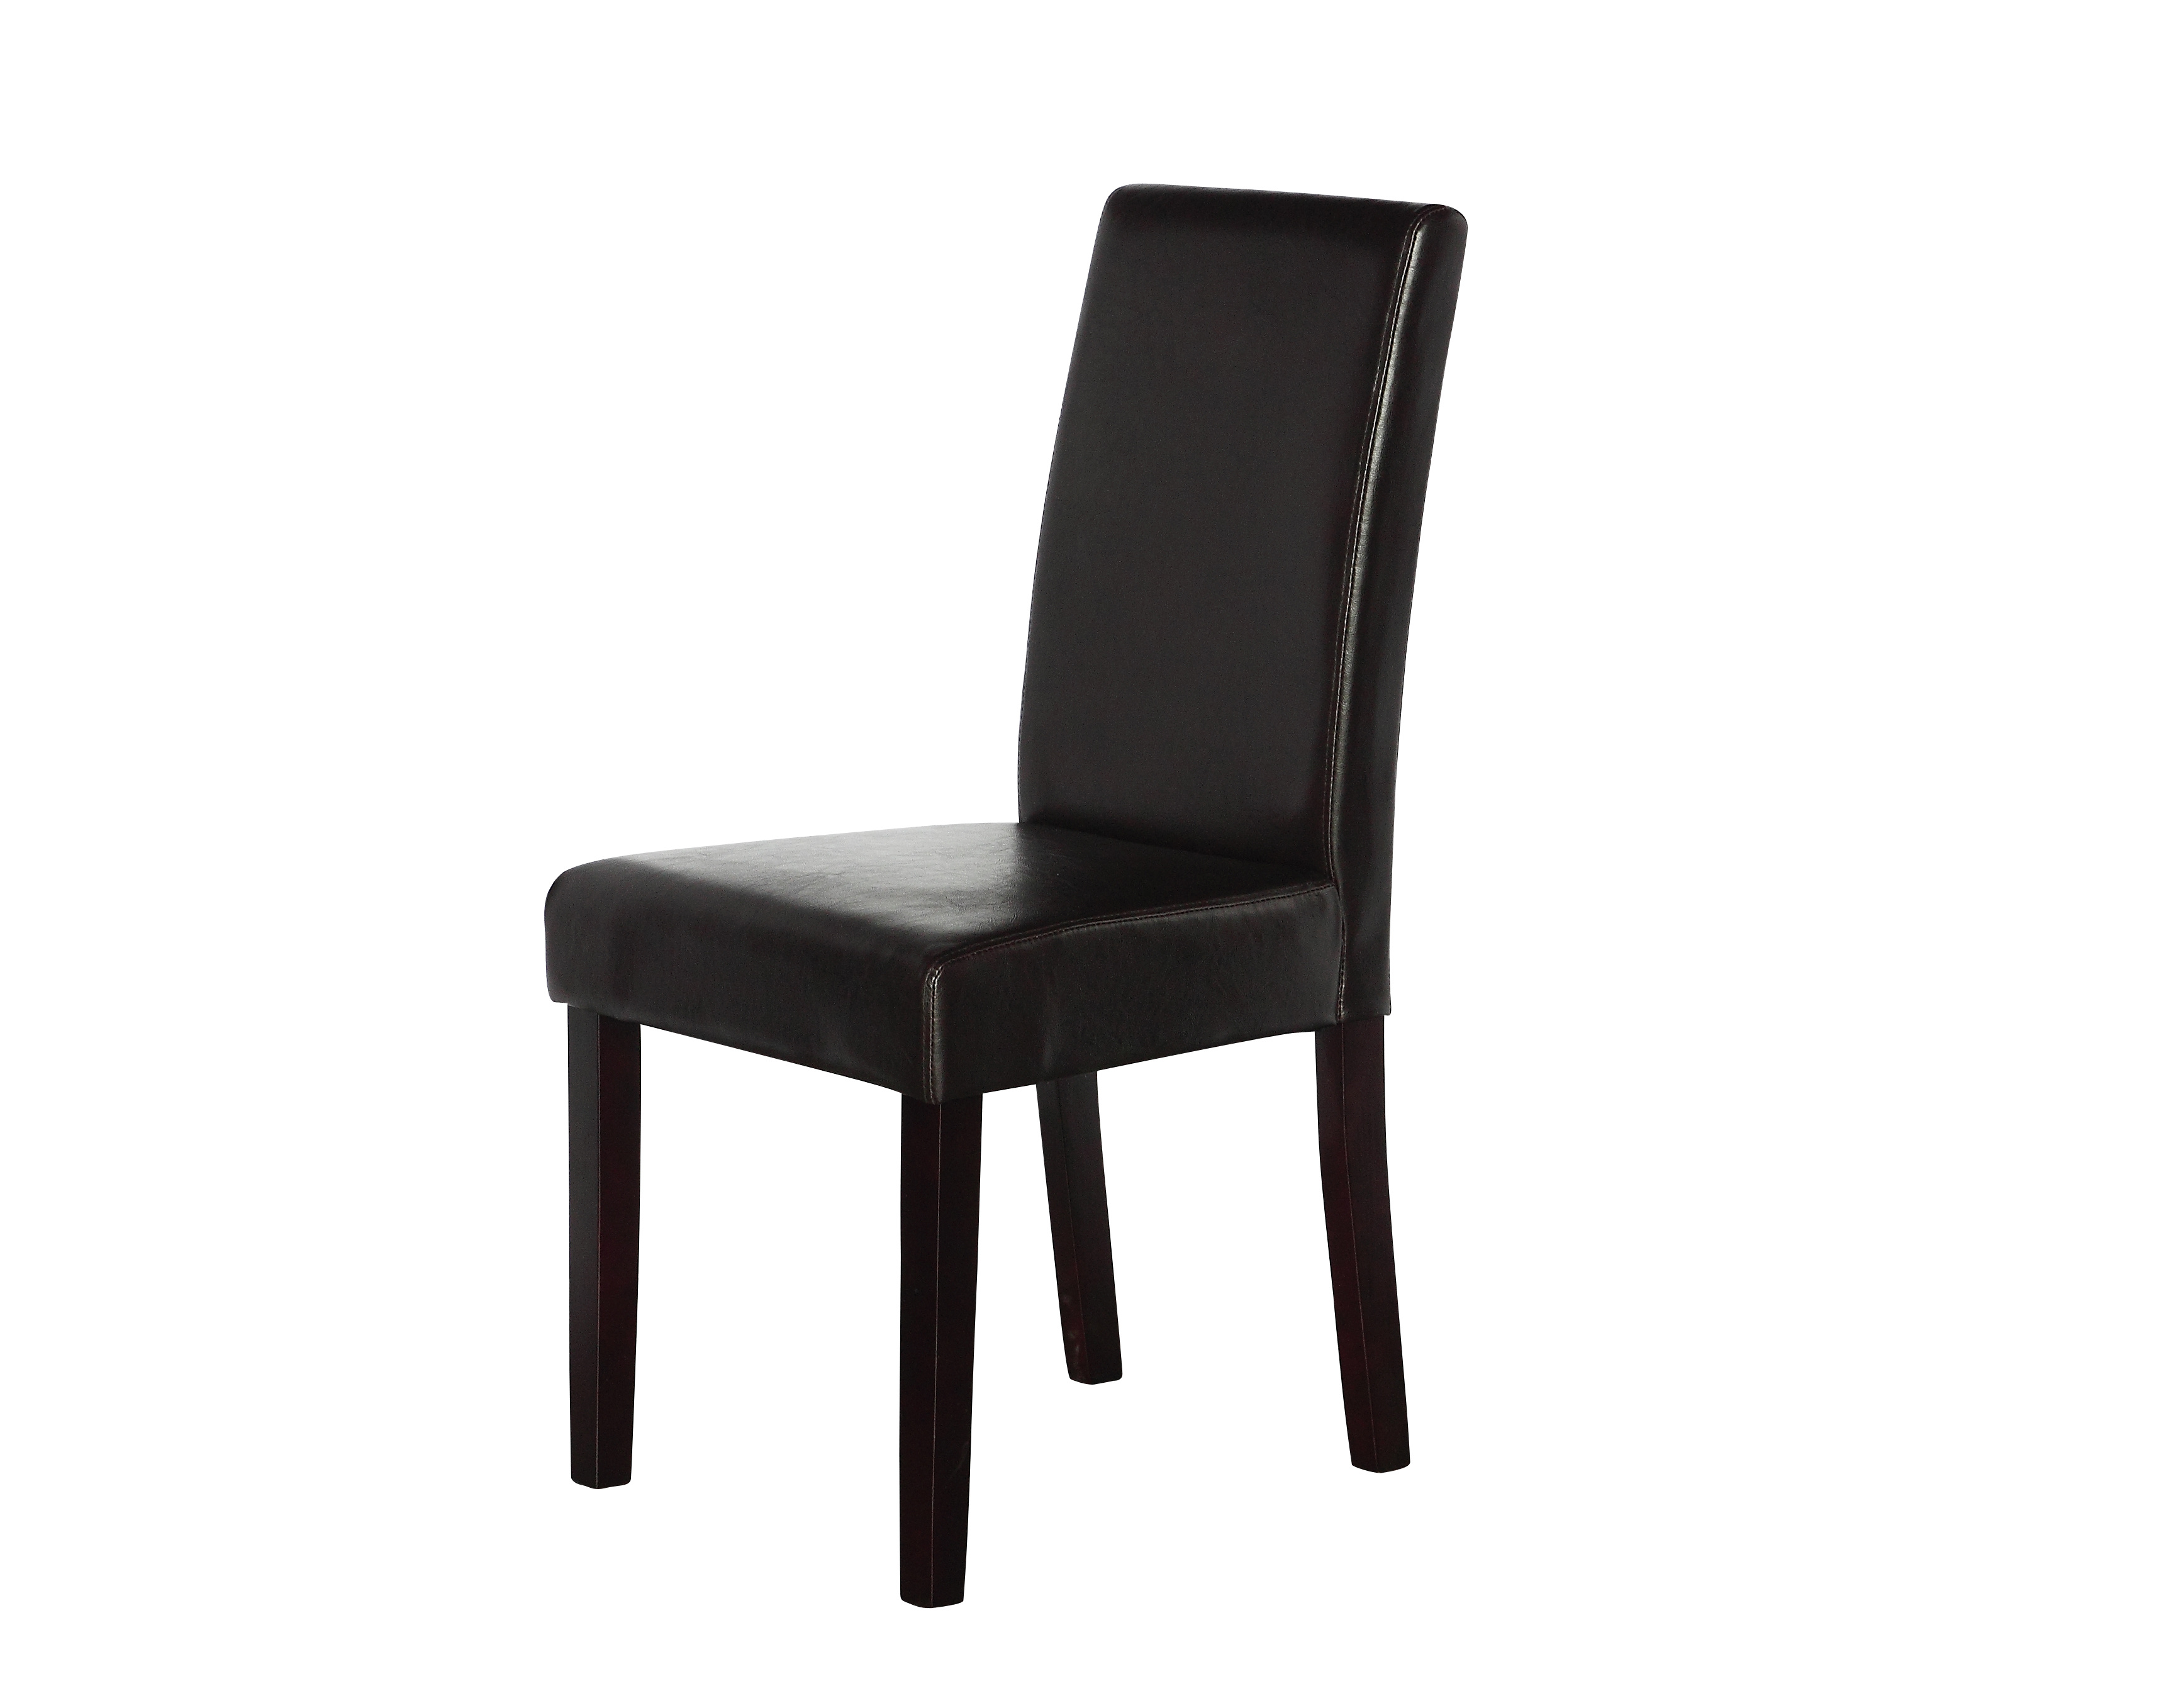 2 x PU Leather Palermo Dining Chairs High Back - Brown  Z2726